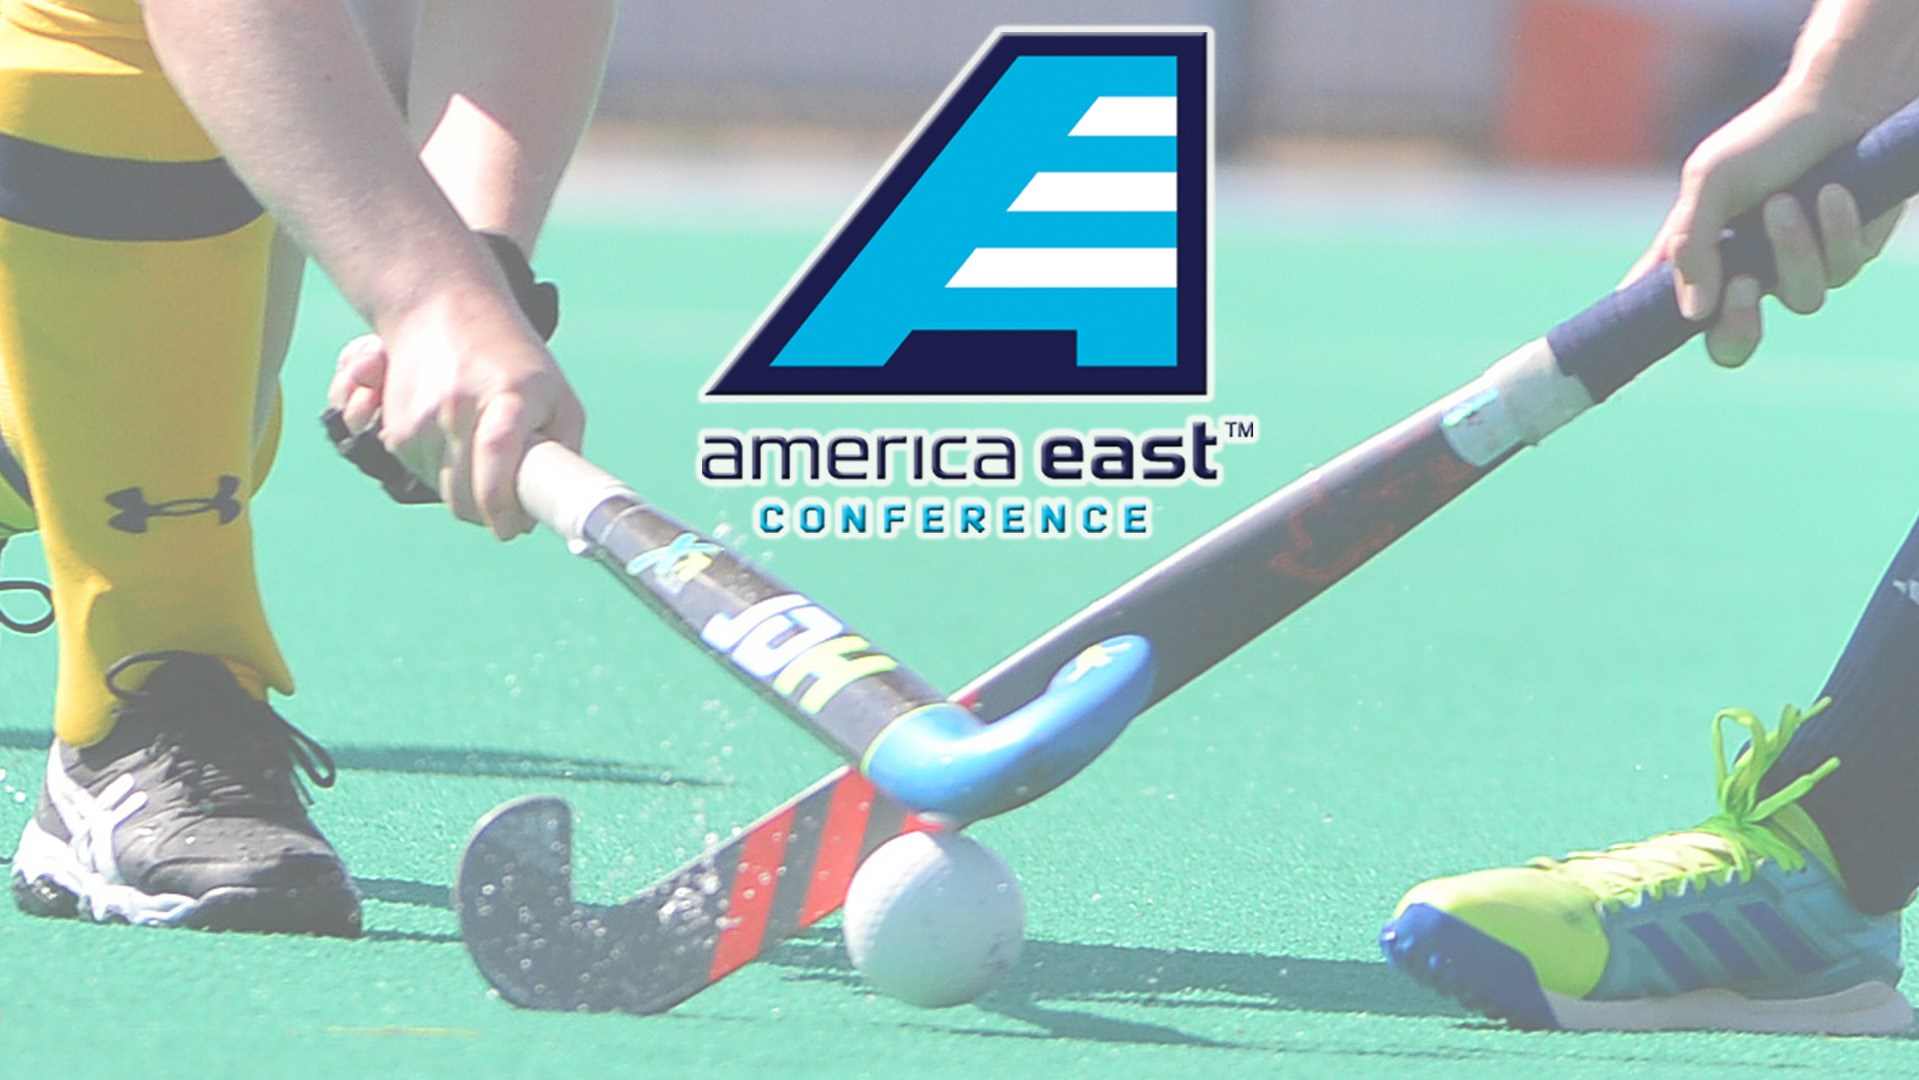 18-FH-America-East-Renewal-Graphic